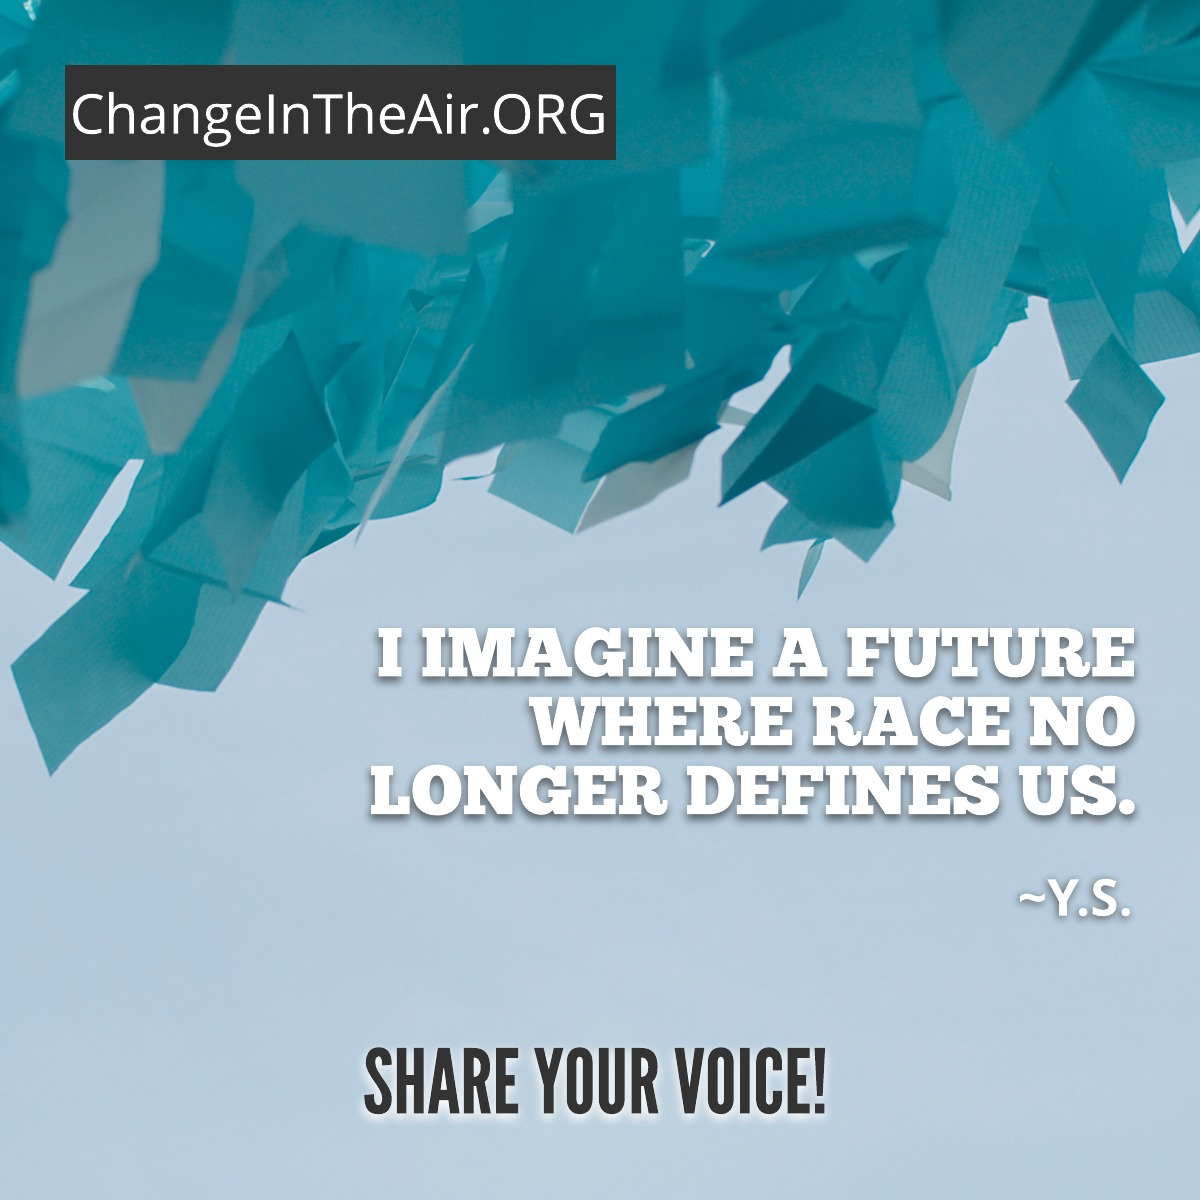 Change in the Air message. I imagine a future where race no longer defines us.